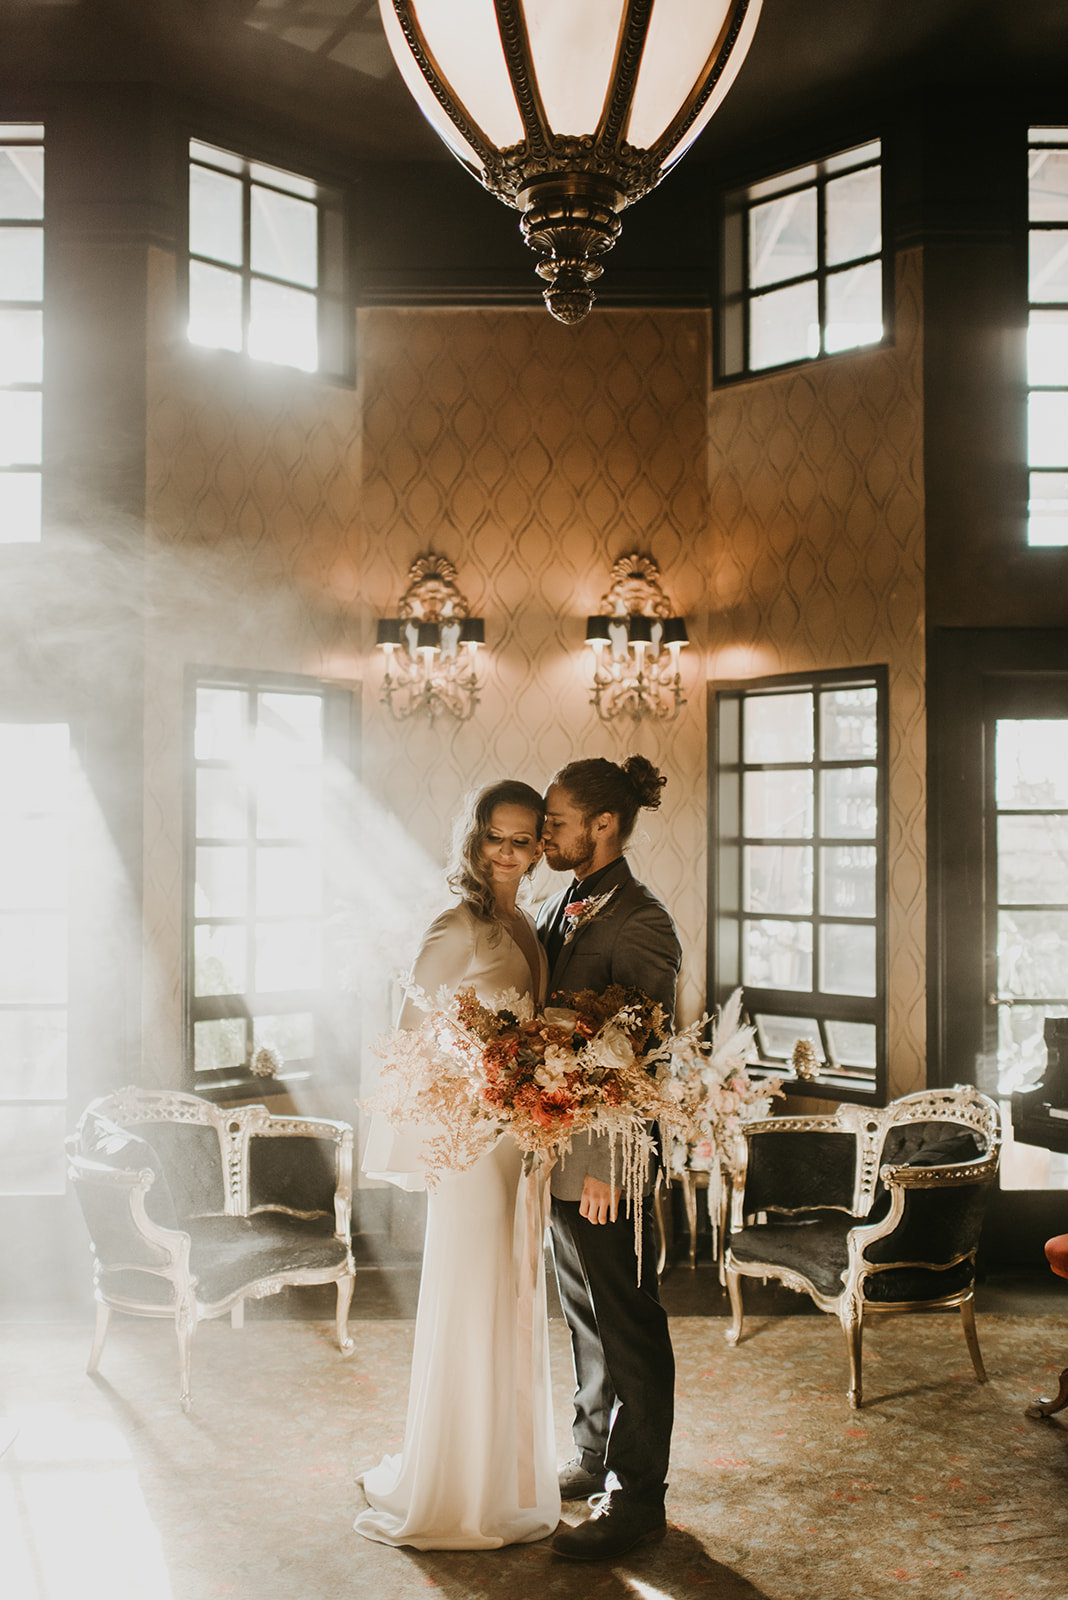 Britty + Beau - Elopement - The Ruins_ Seattle_ WA - Kamra Fuller Photography - Runaway With Me Elopement Collective-45